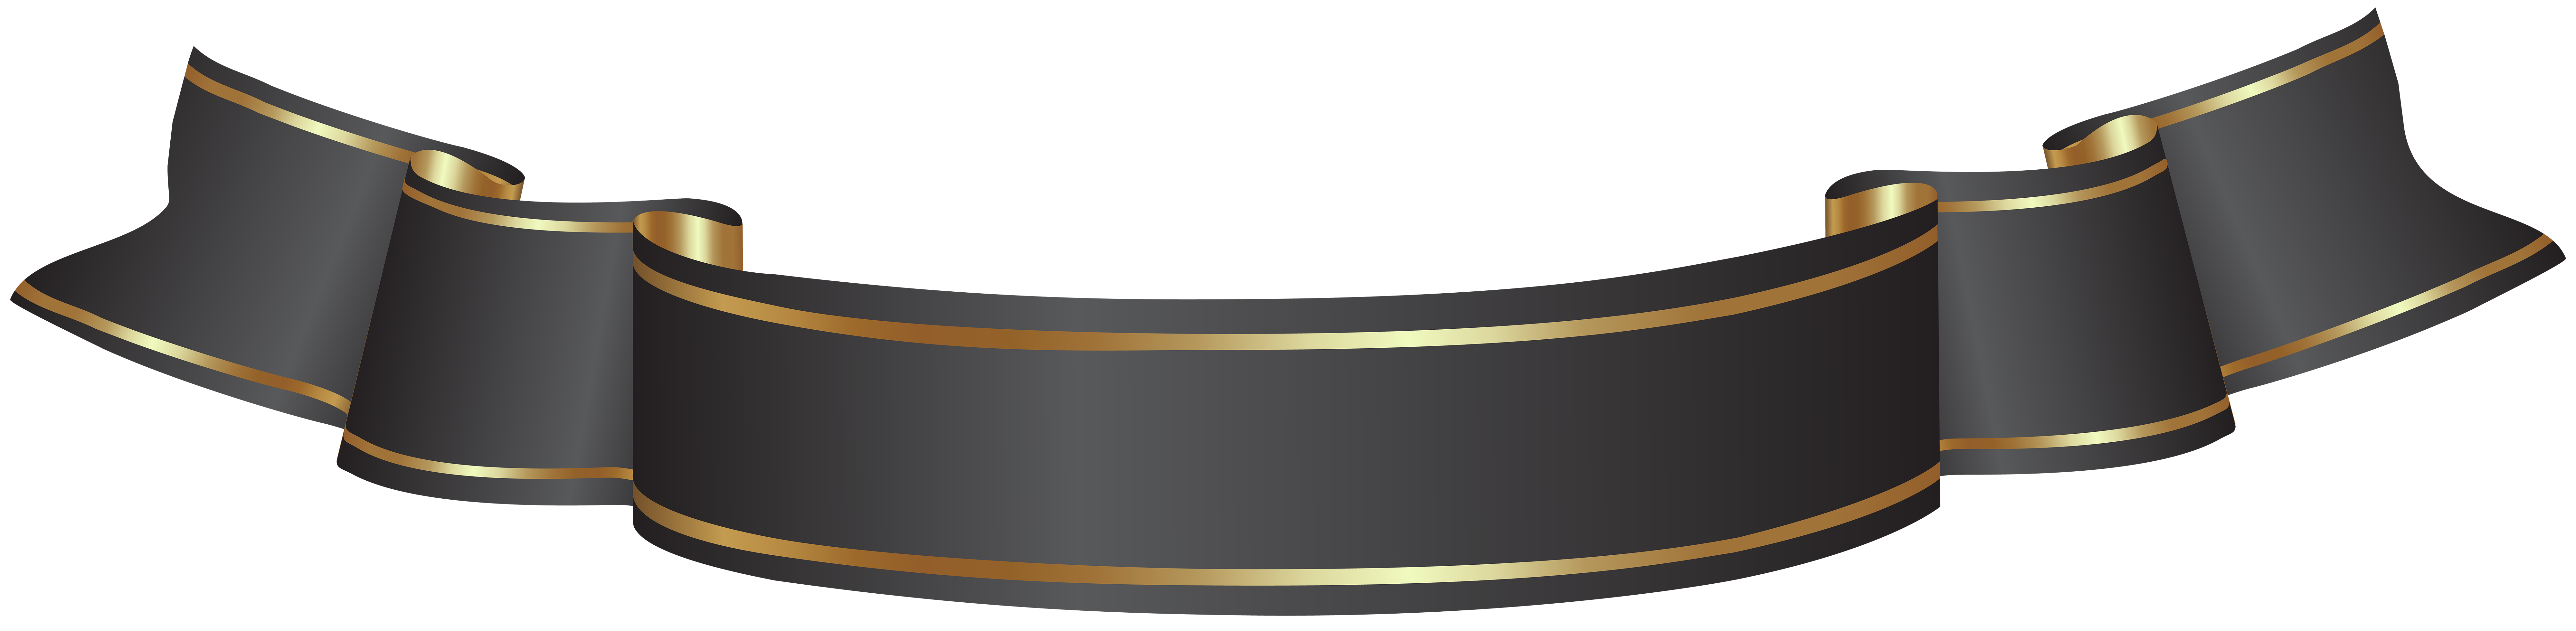 Black and gold banner png. Transparent clip art gallery